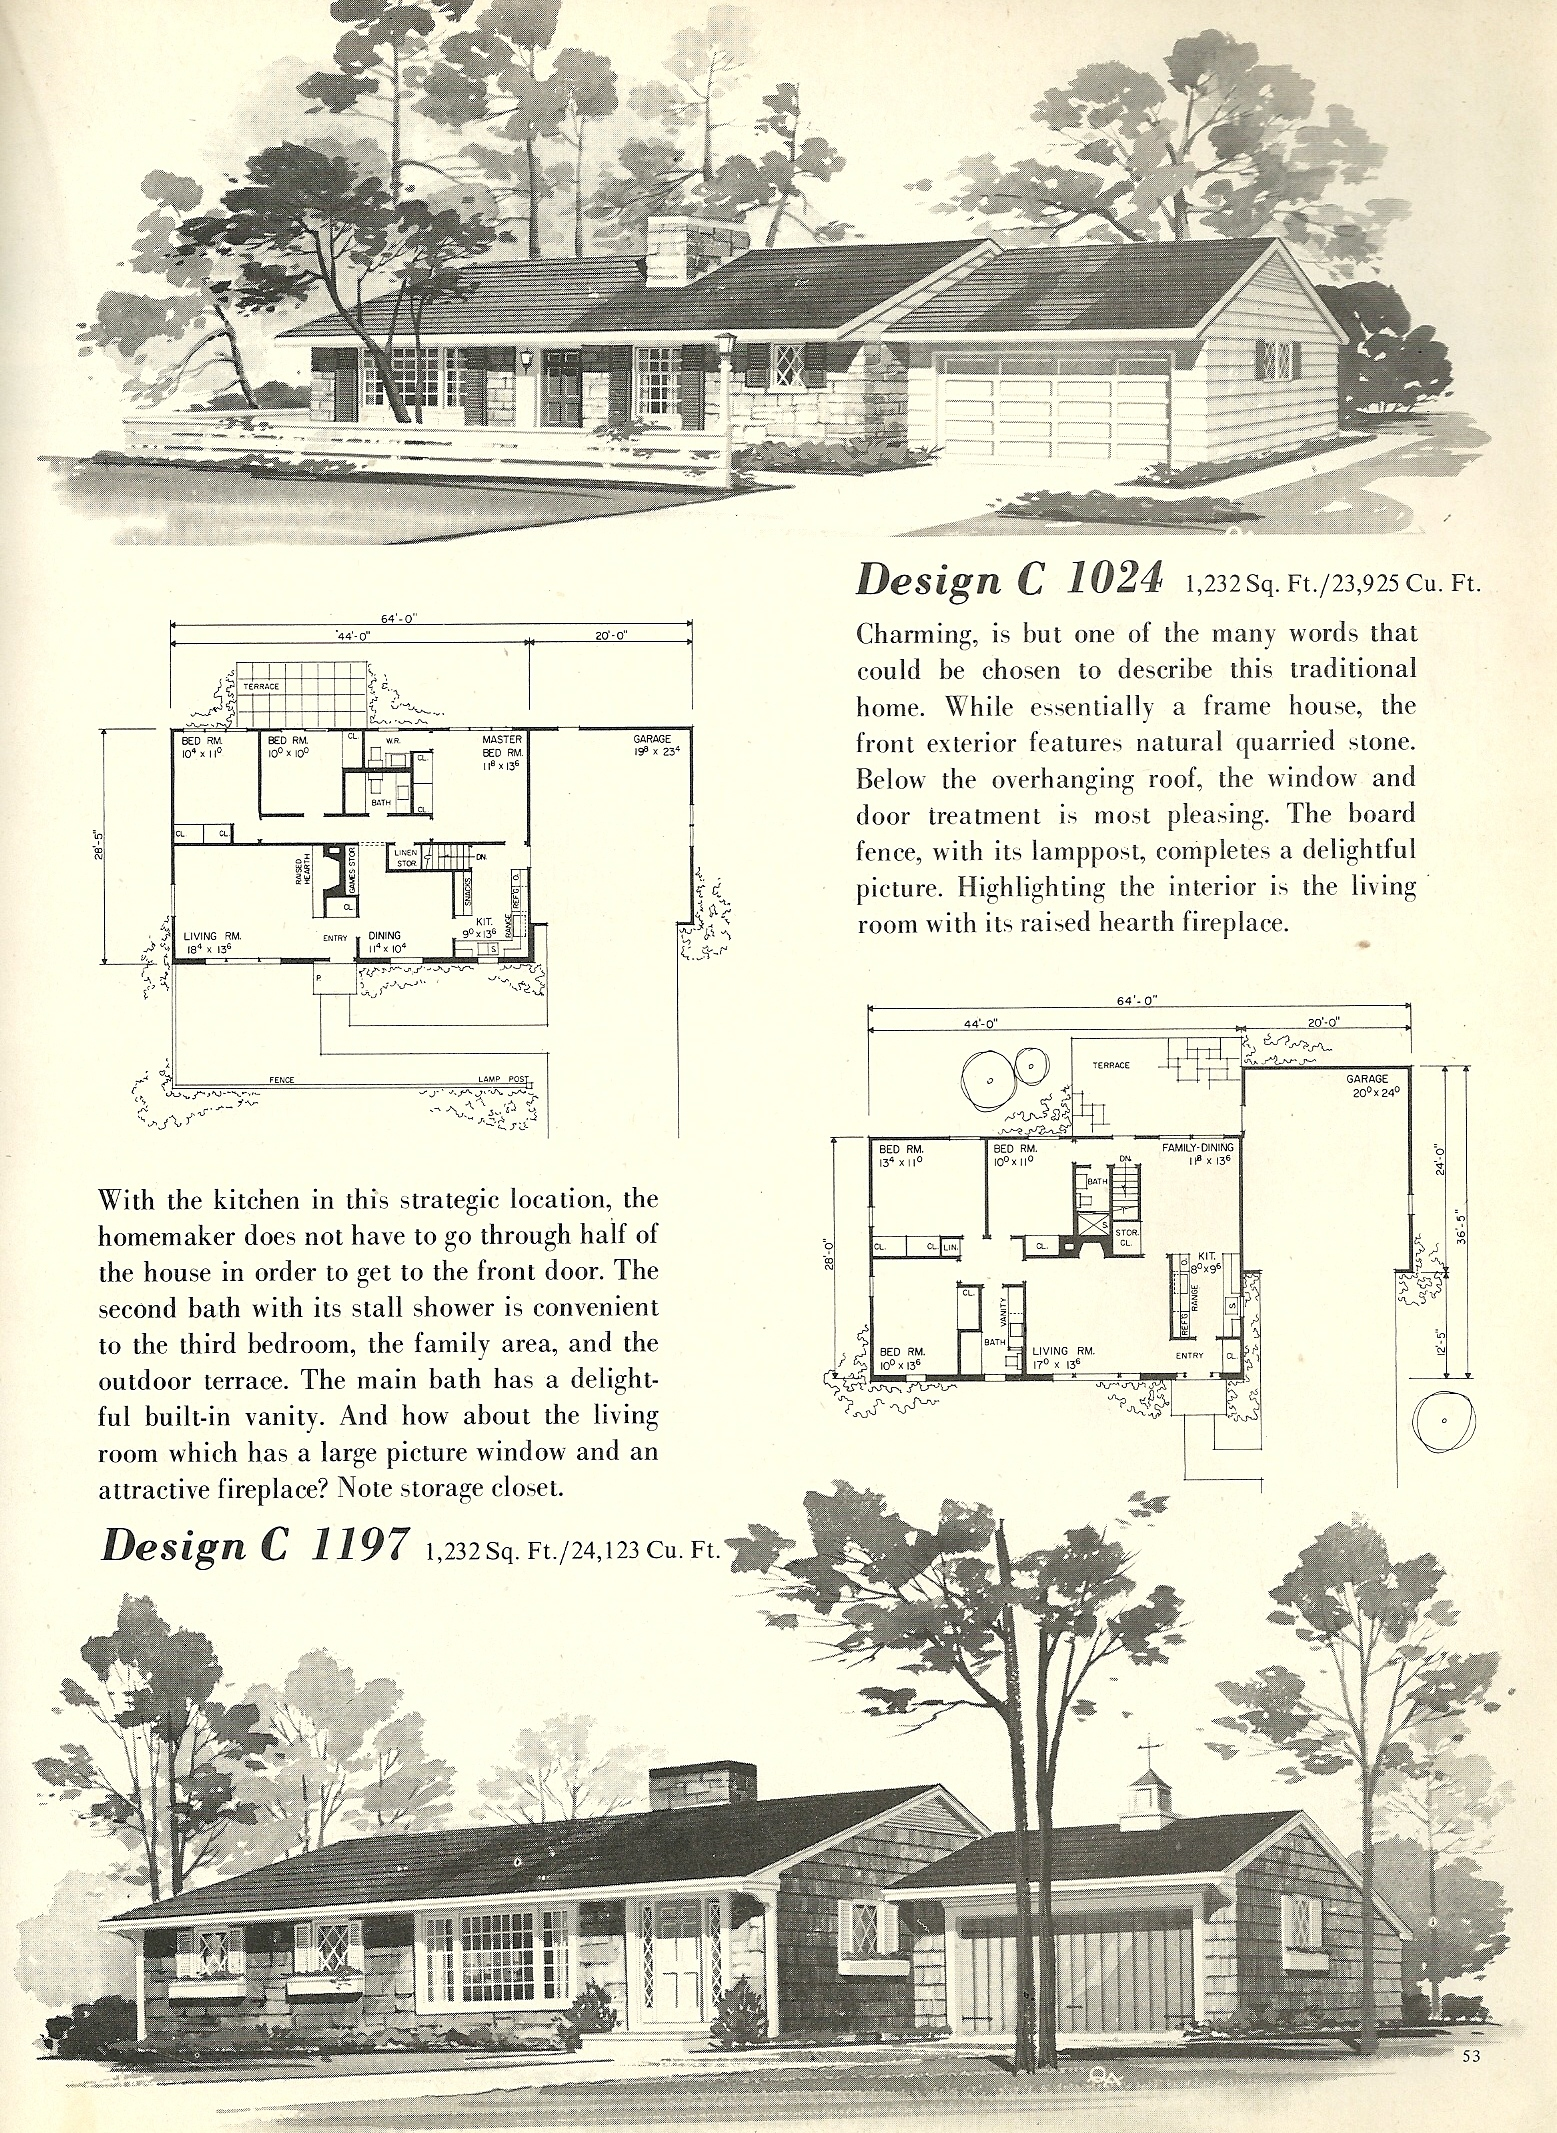 Vintage house plans 1024 antique alter ego 1960s ranch style house plans